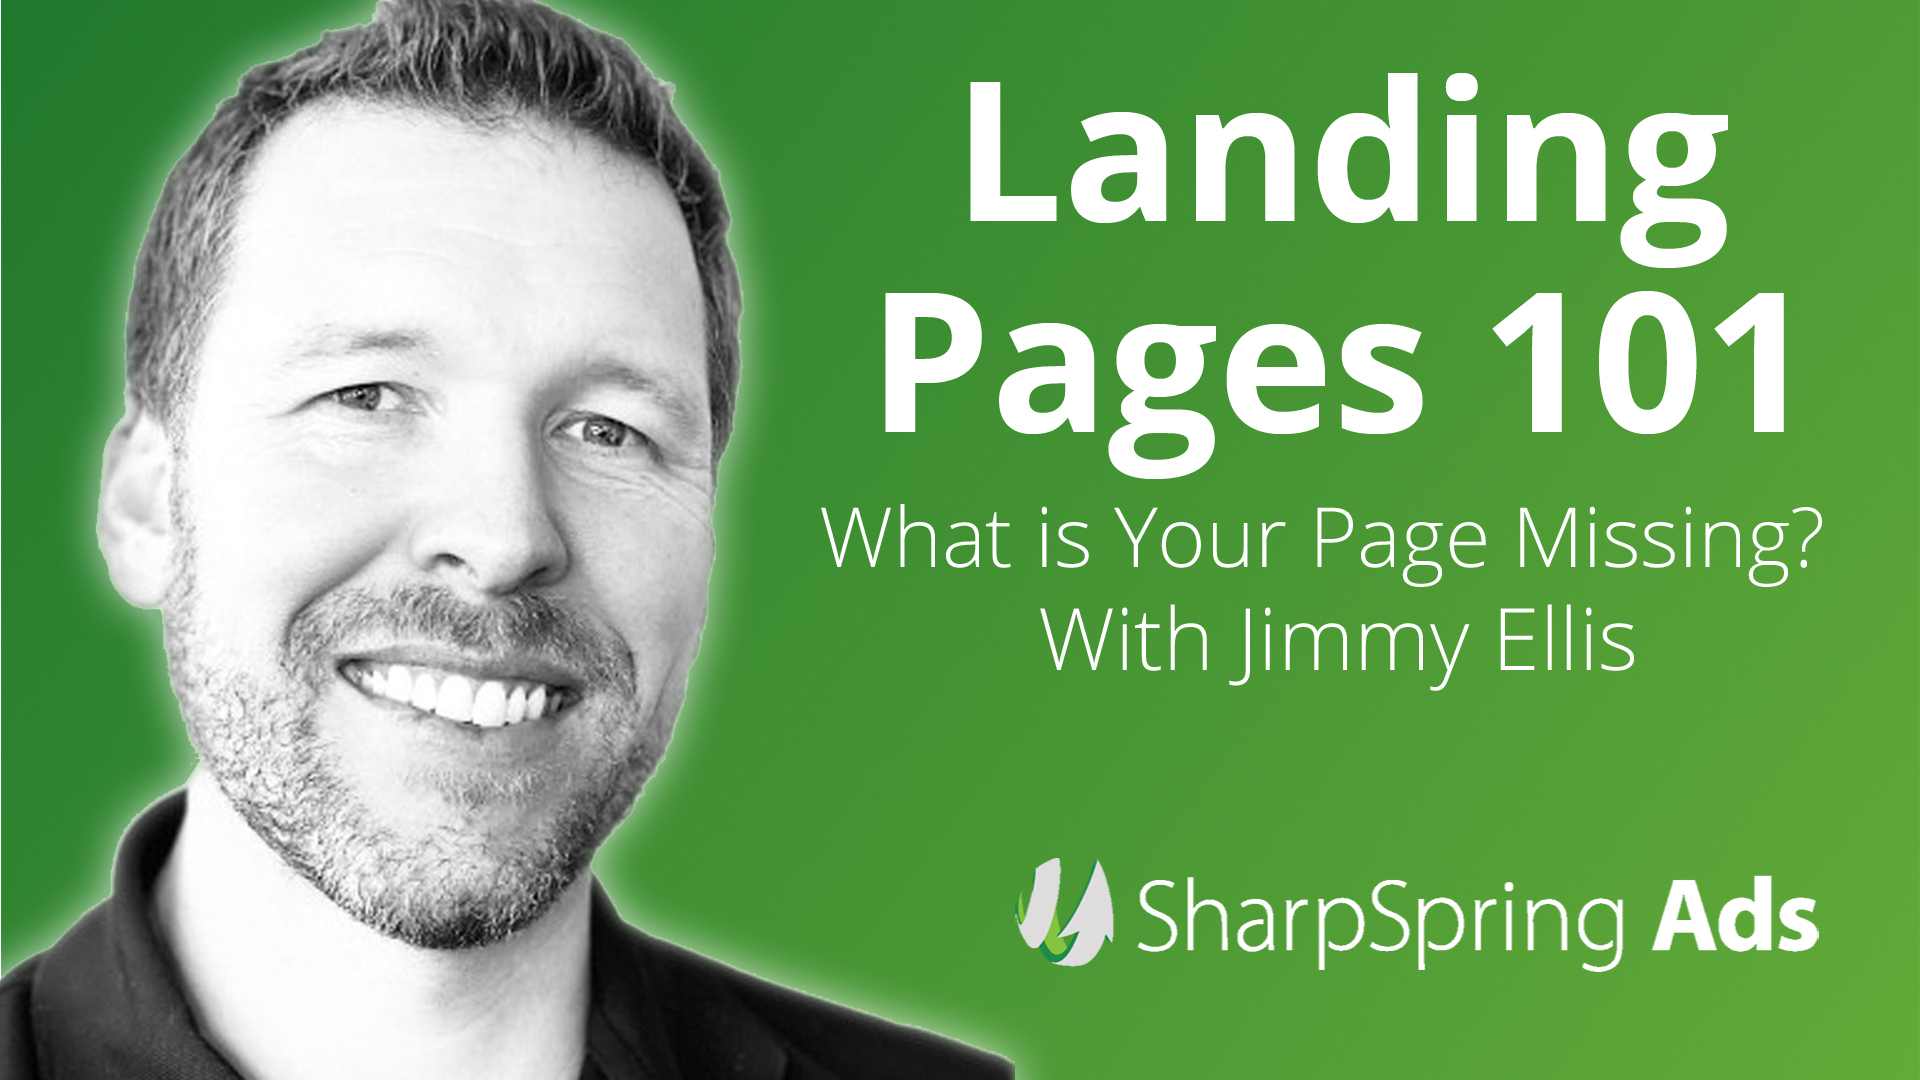 Landing Pages 101 – Who is this page REALLY for?